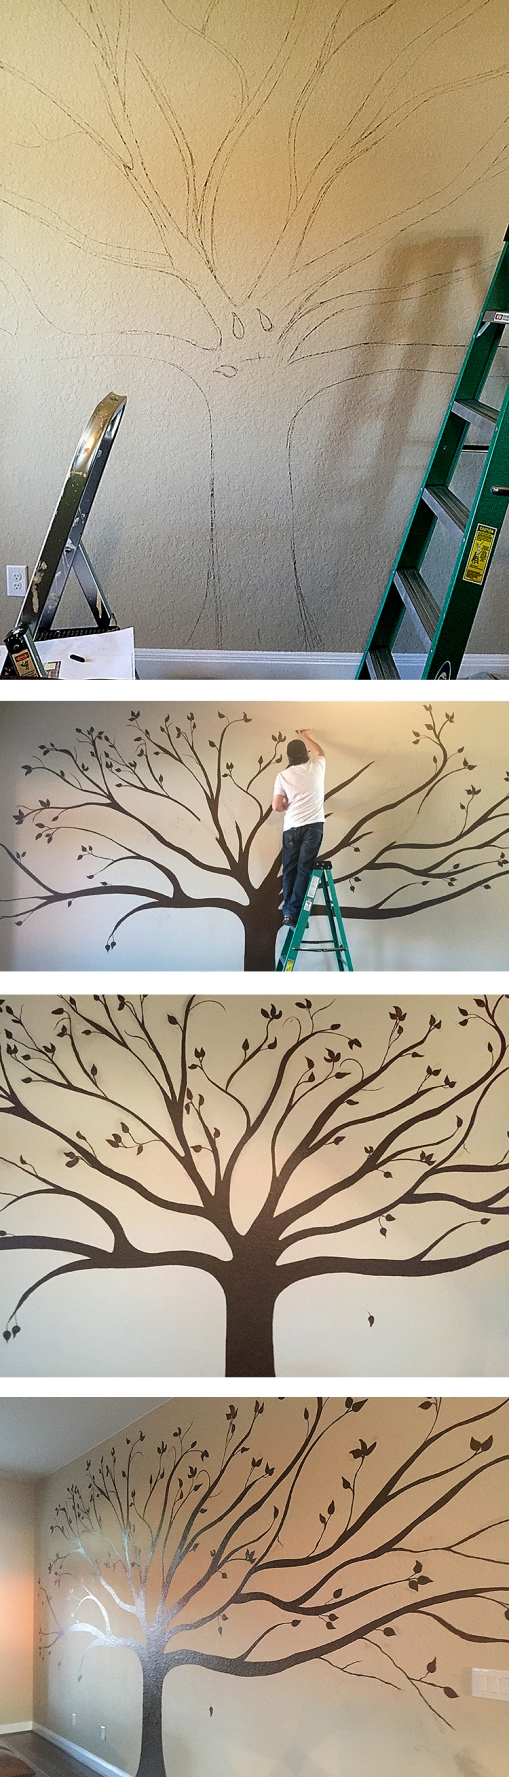 WilliamTreeMural